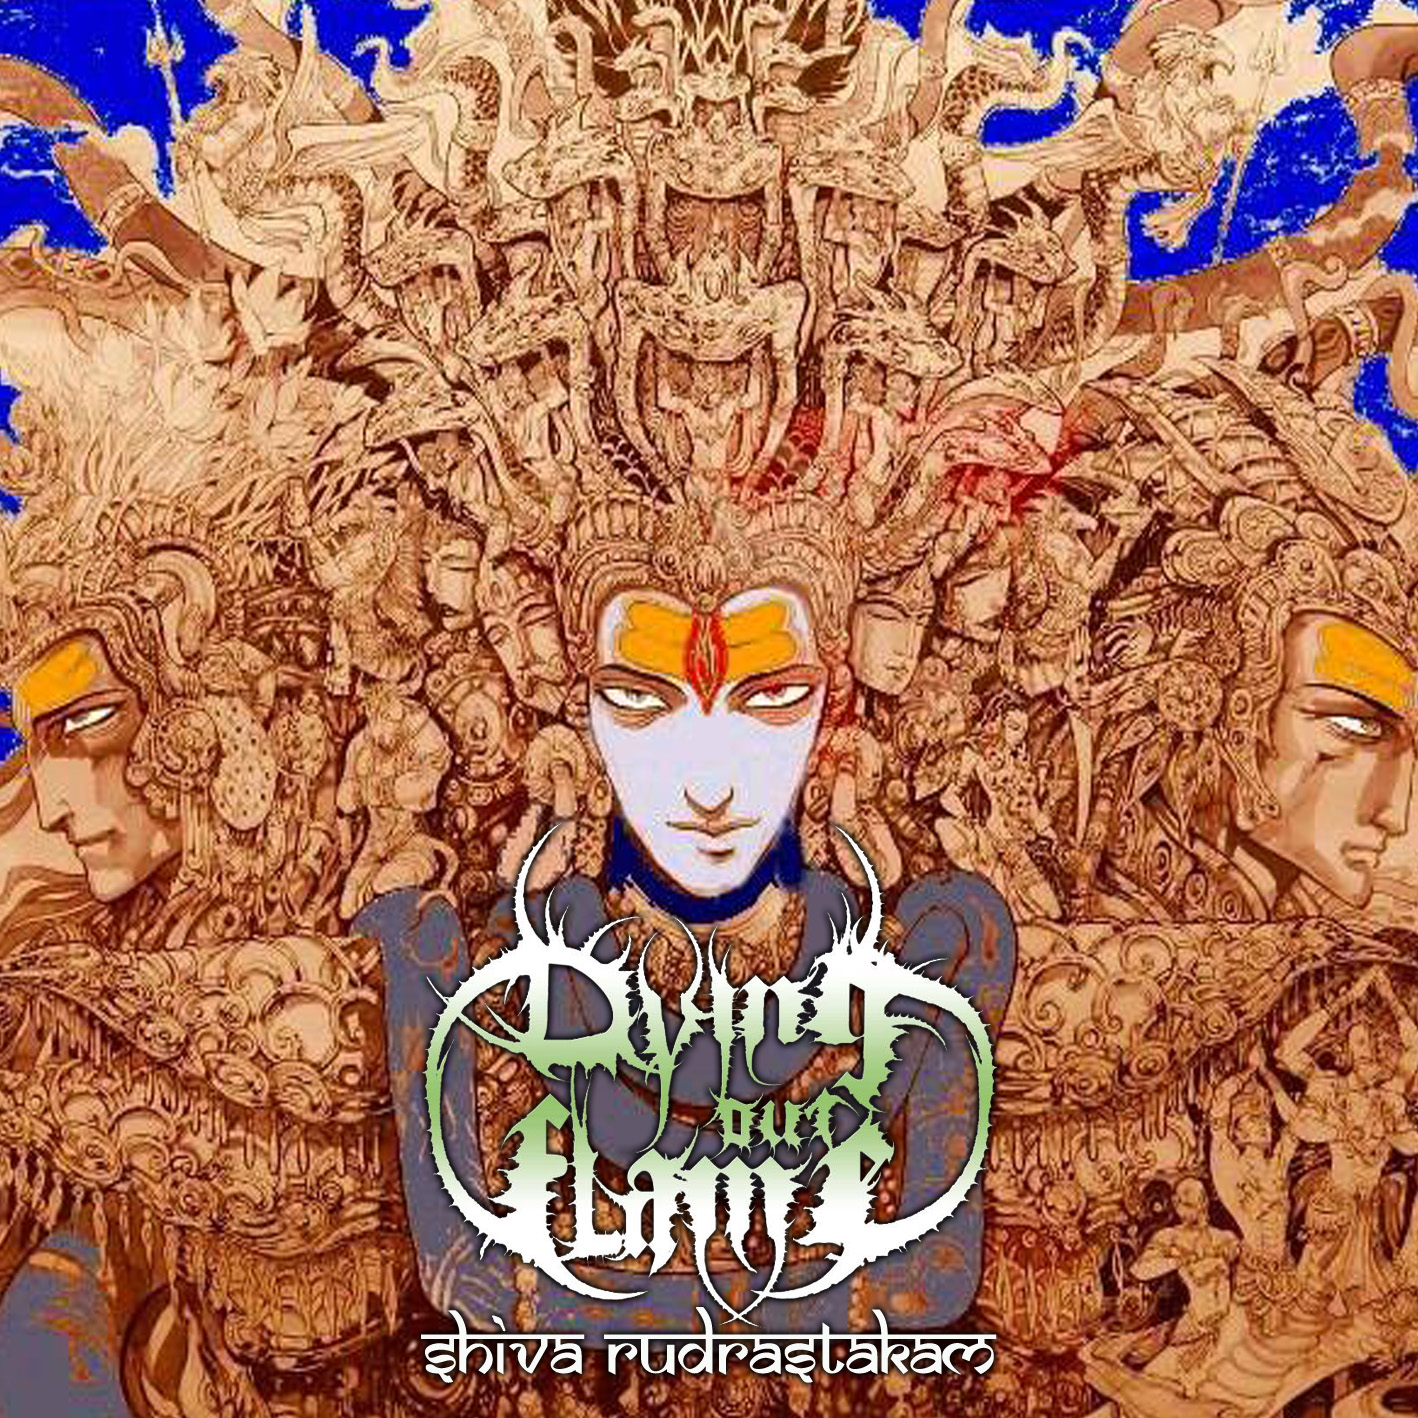 DYING OUT FLAME - Shiva Rudrastakam (2014) * Review